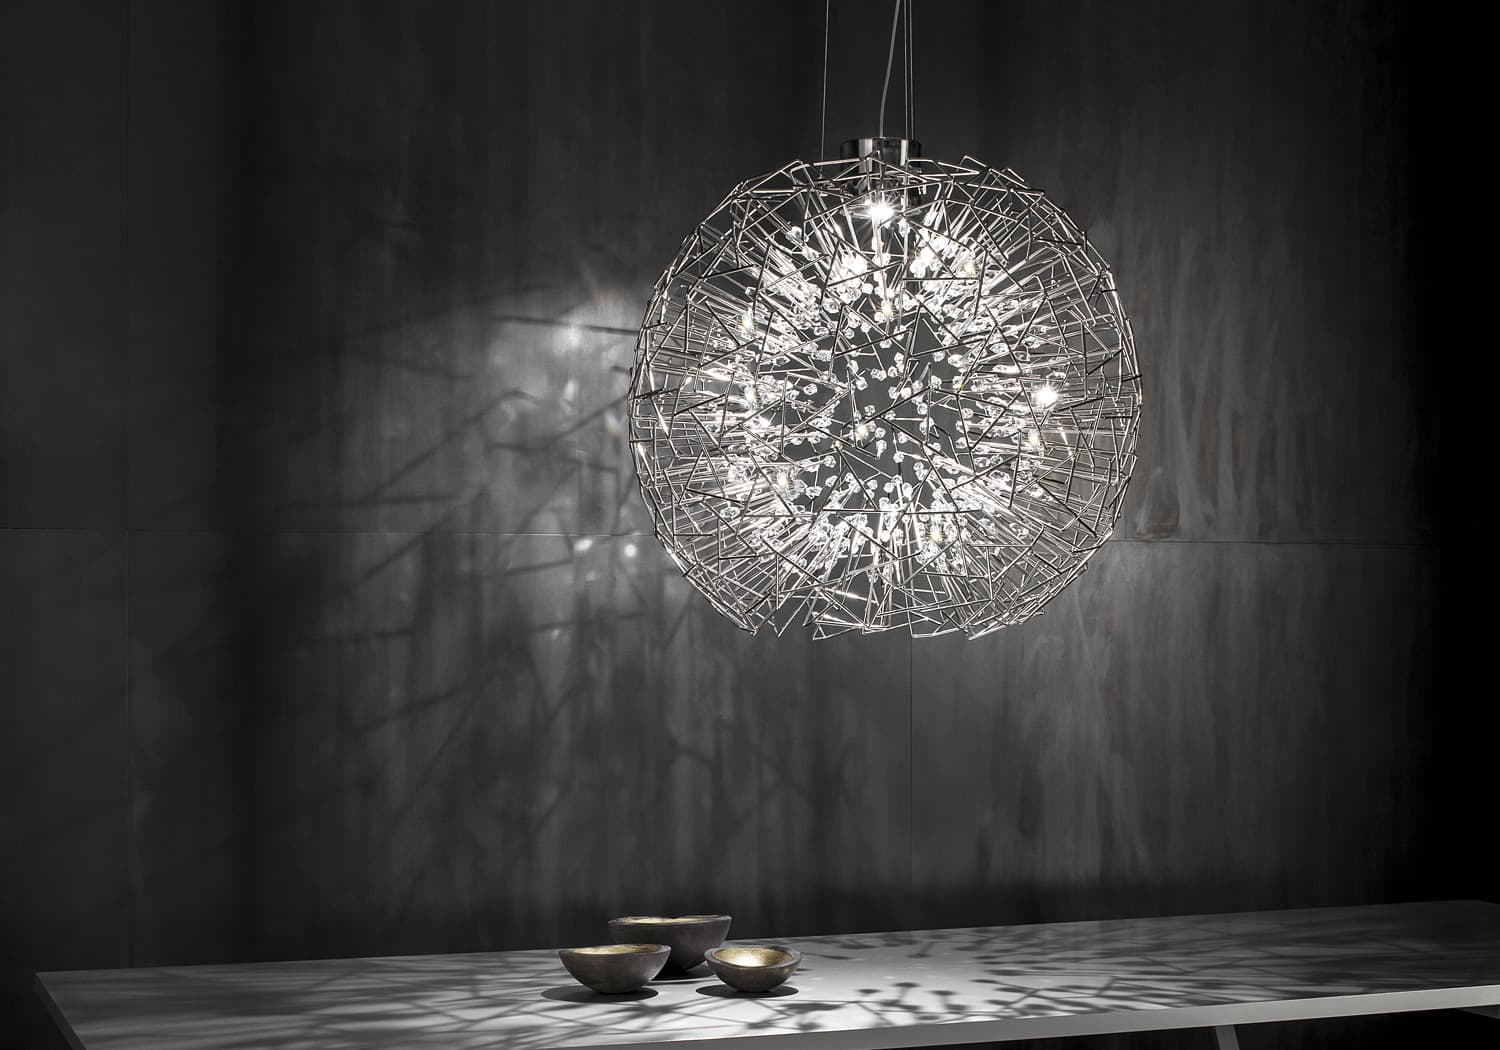 Metal Ceiling Pendant Light